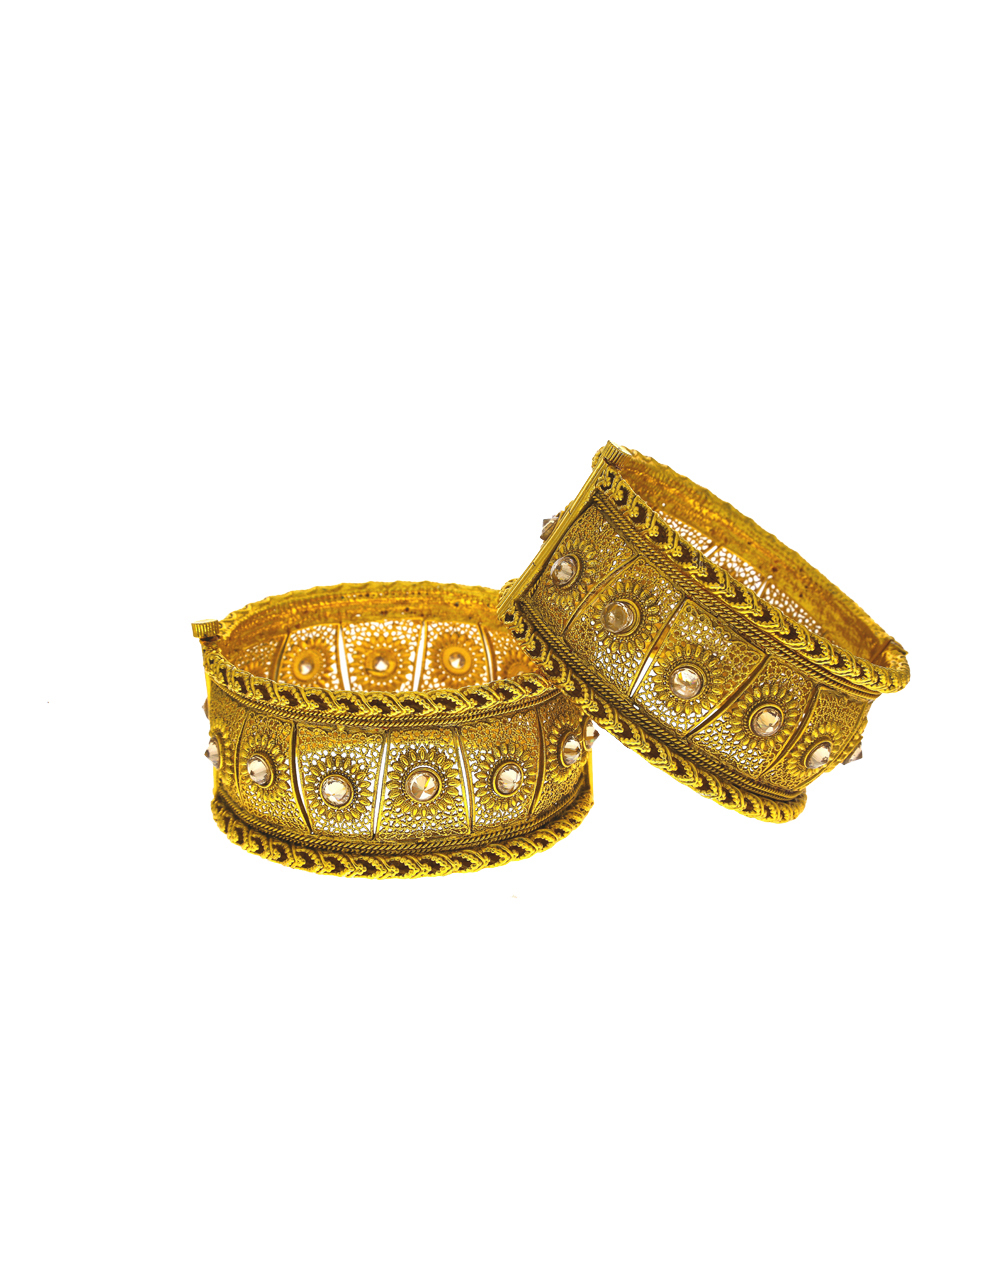 Floral designer decked with LCT stone in centre of design bangles for women.